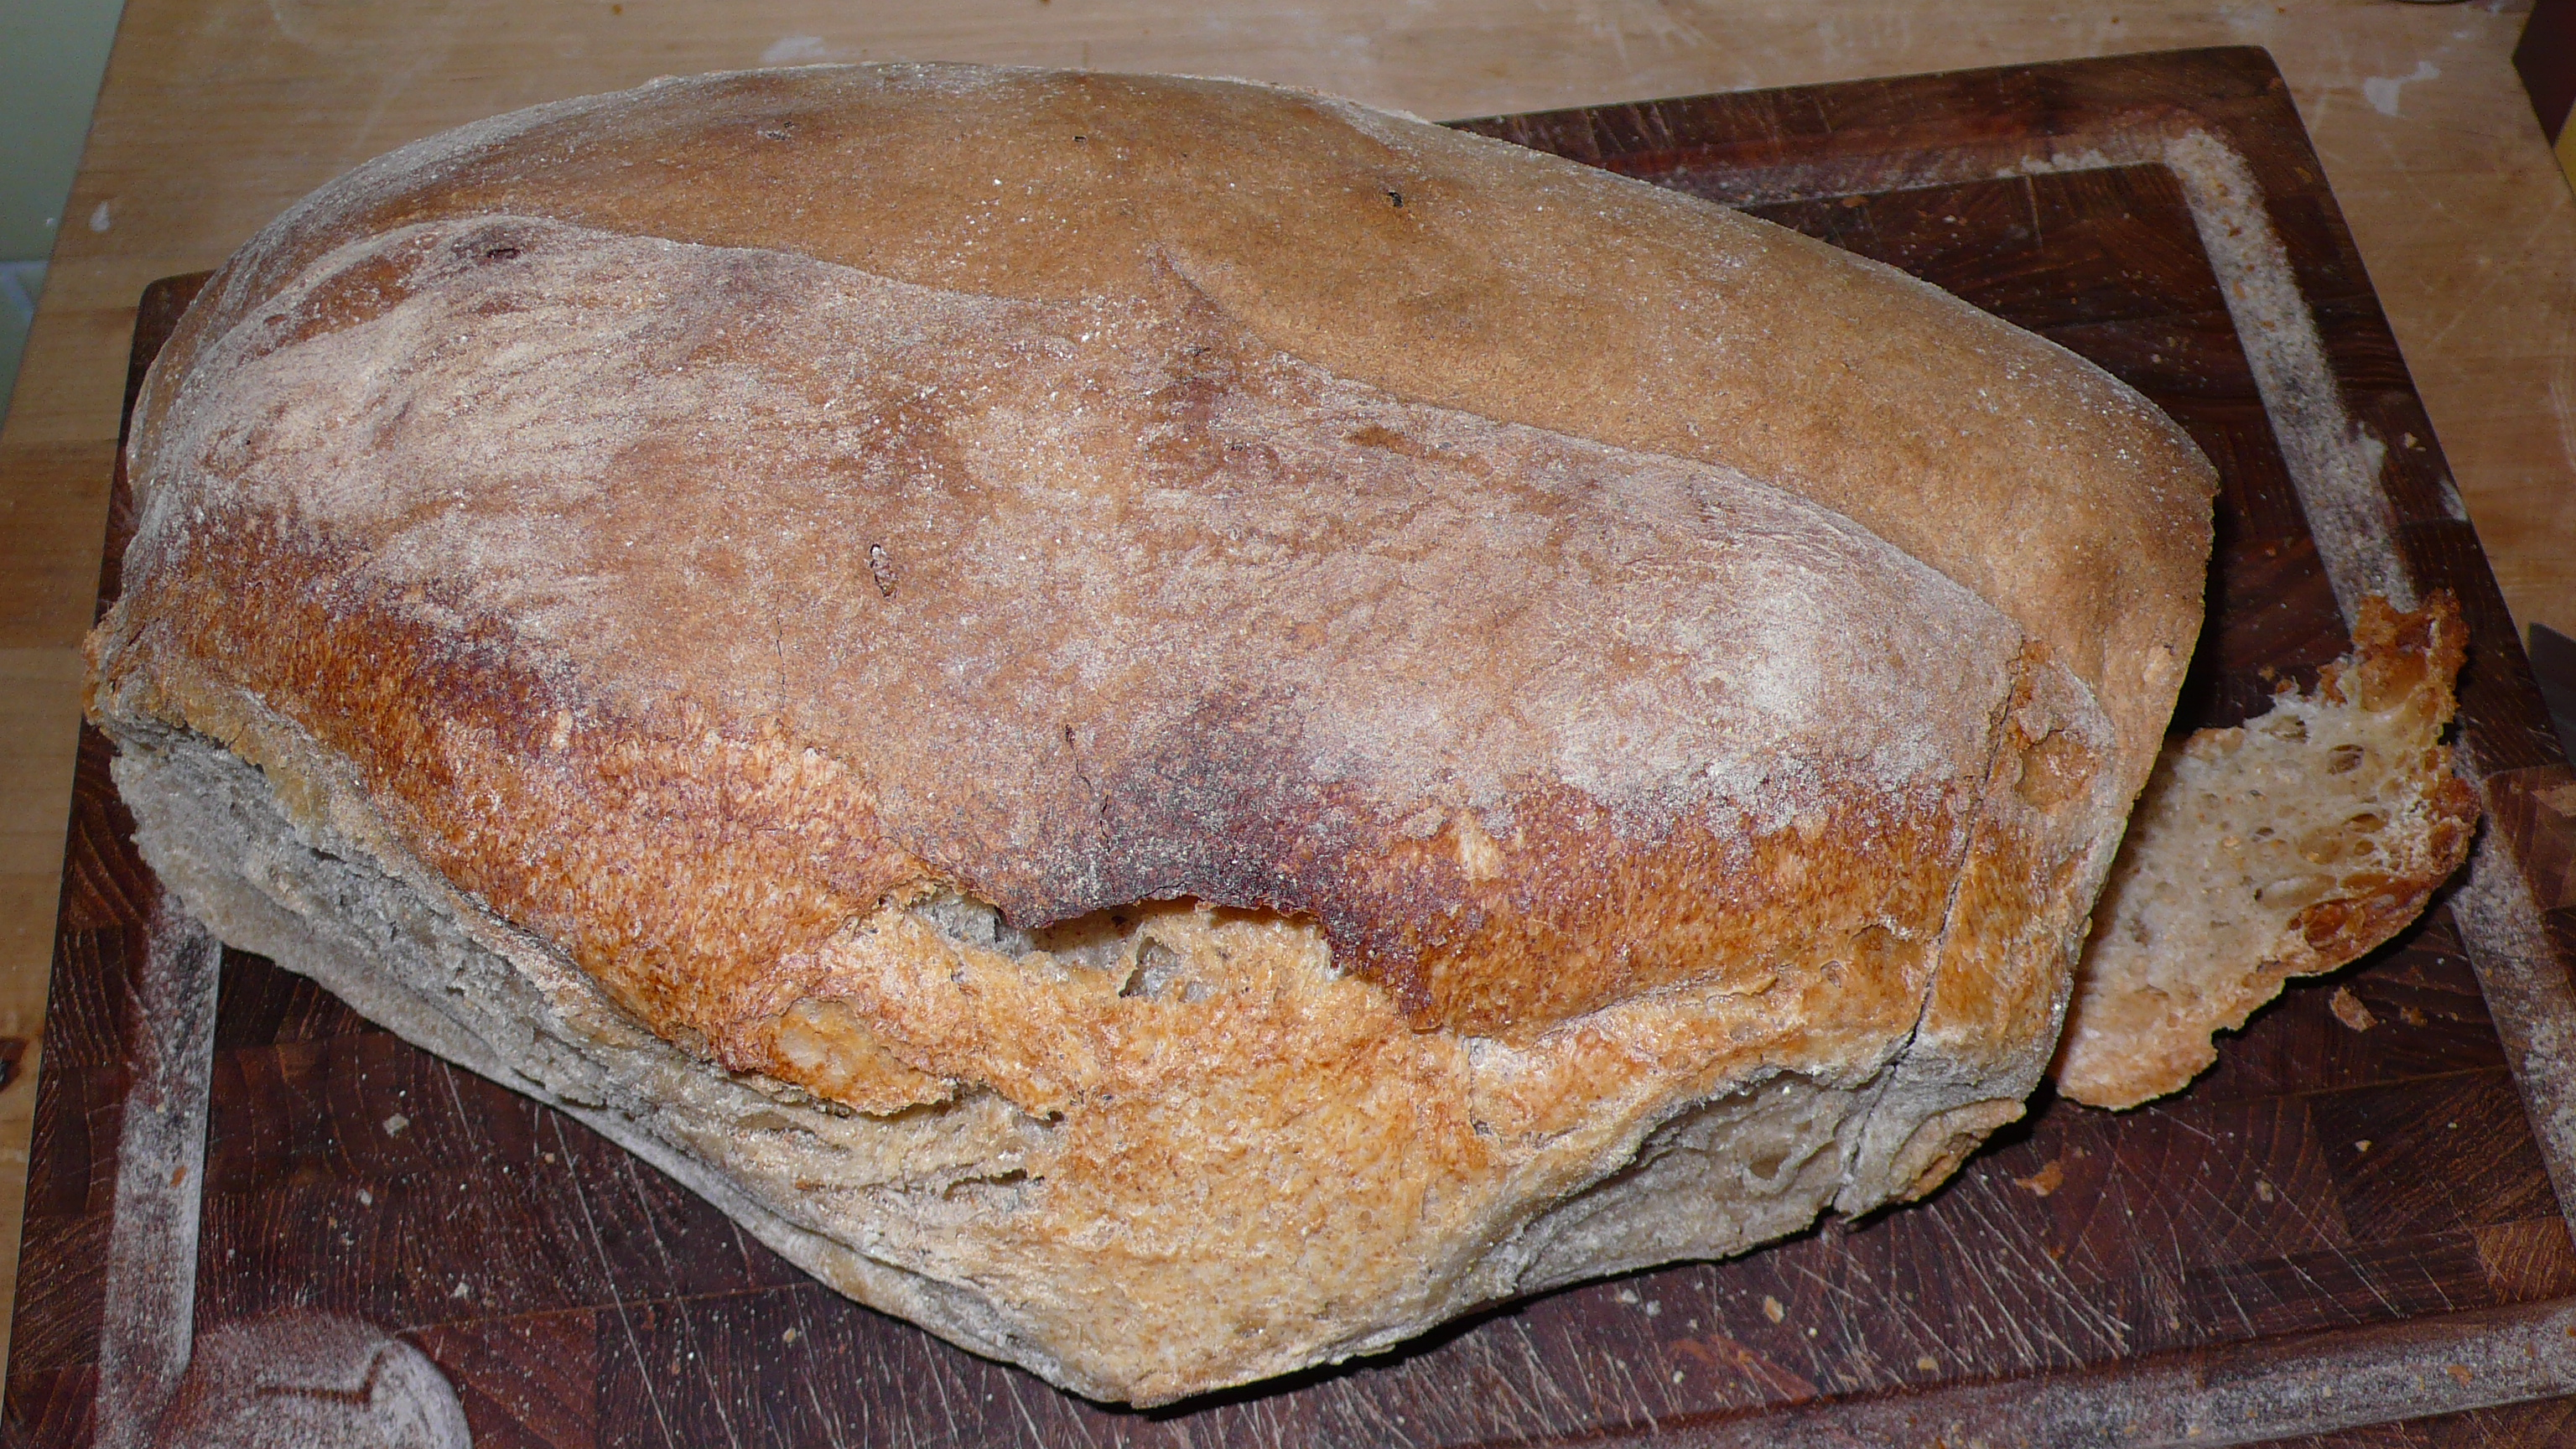 Pane Di Lariano Is A Whole Wheat Bread That Comes From Town South Of Rome